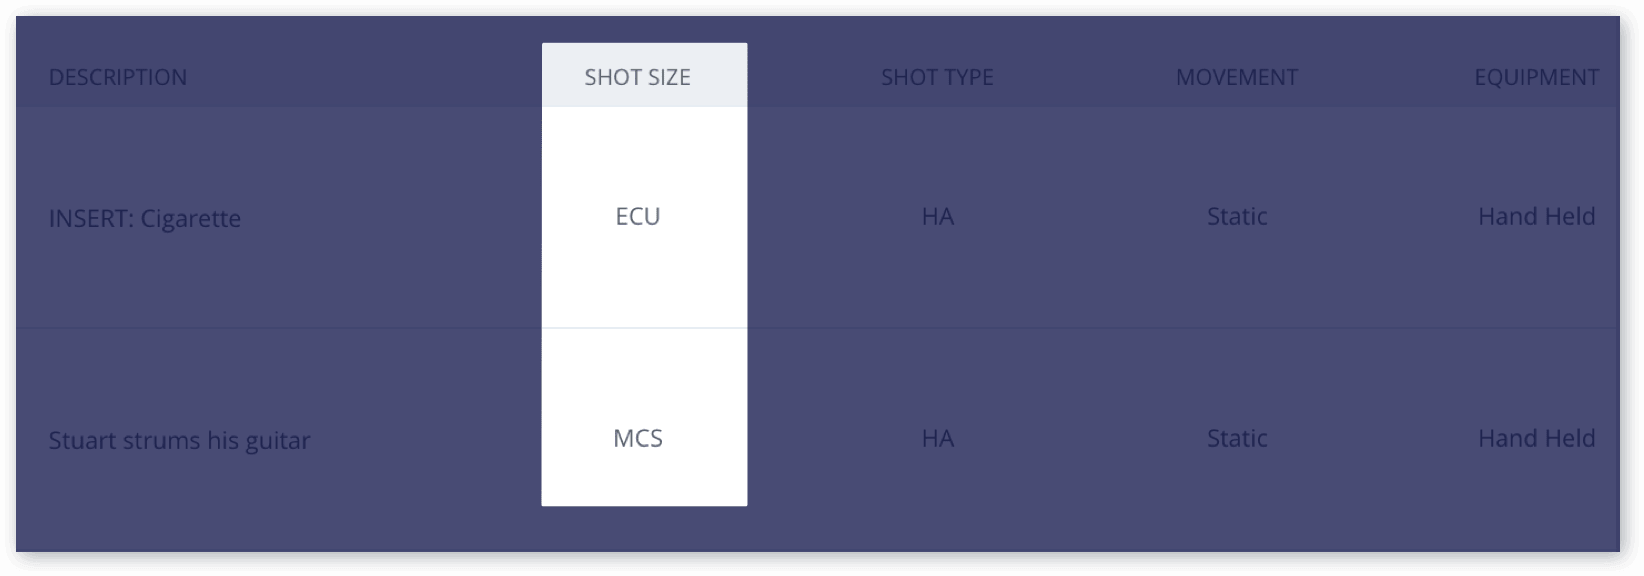 The Only Shot List Template You Need (with Free Download) - Shot Size